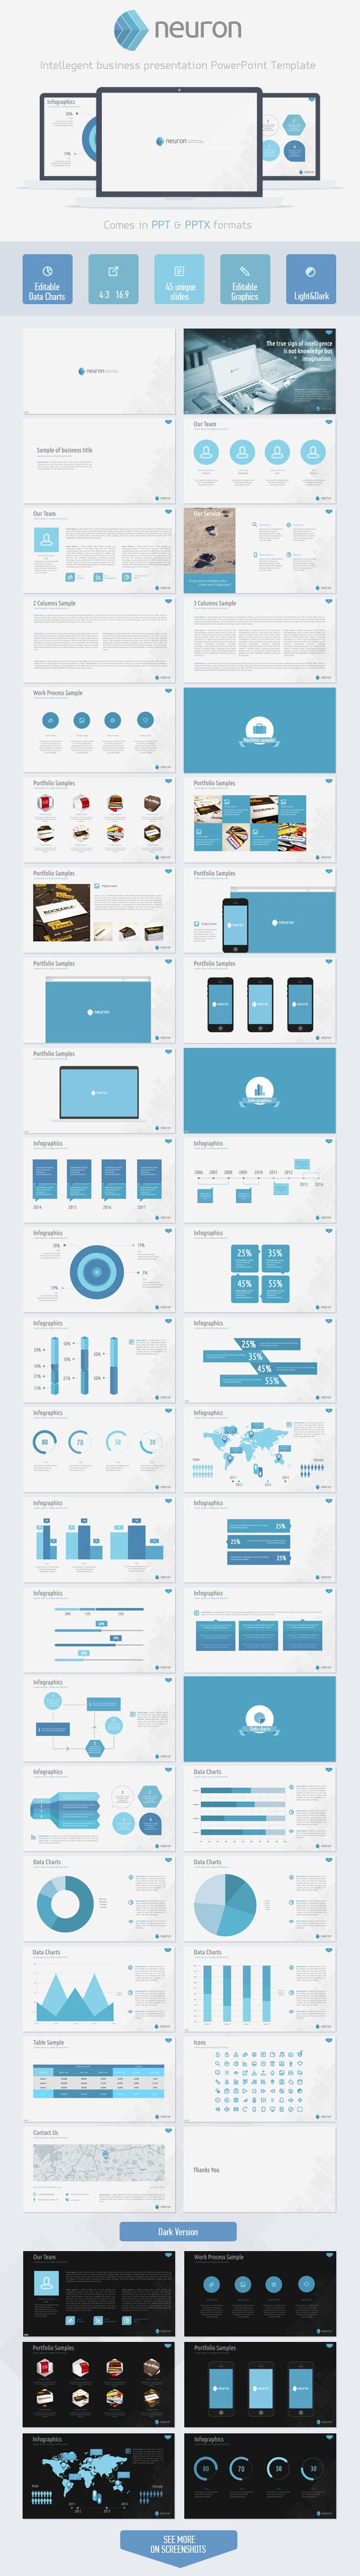 Neuron Powerpoint Presentation Template - Business PowerPoint Templates